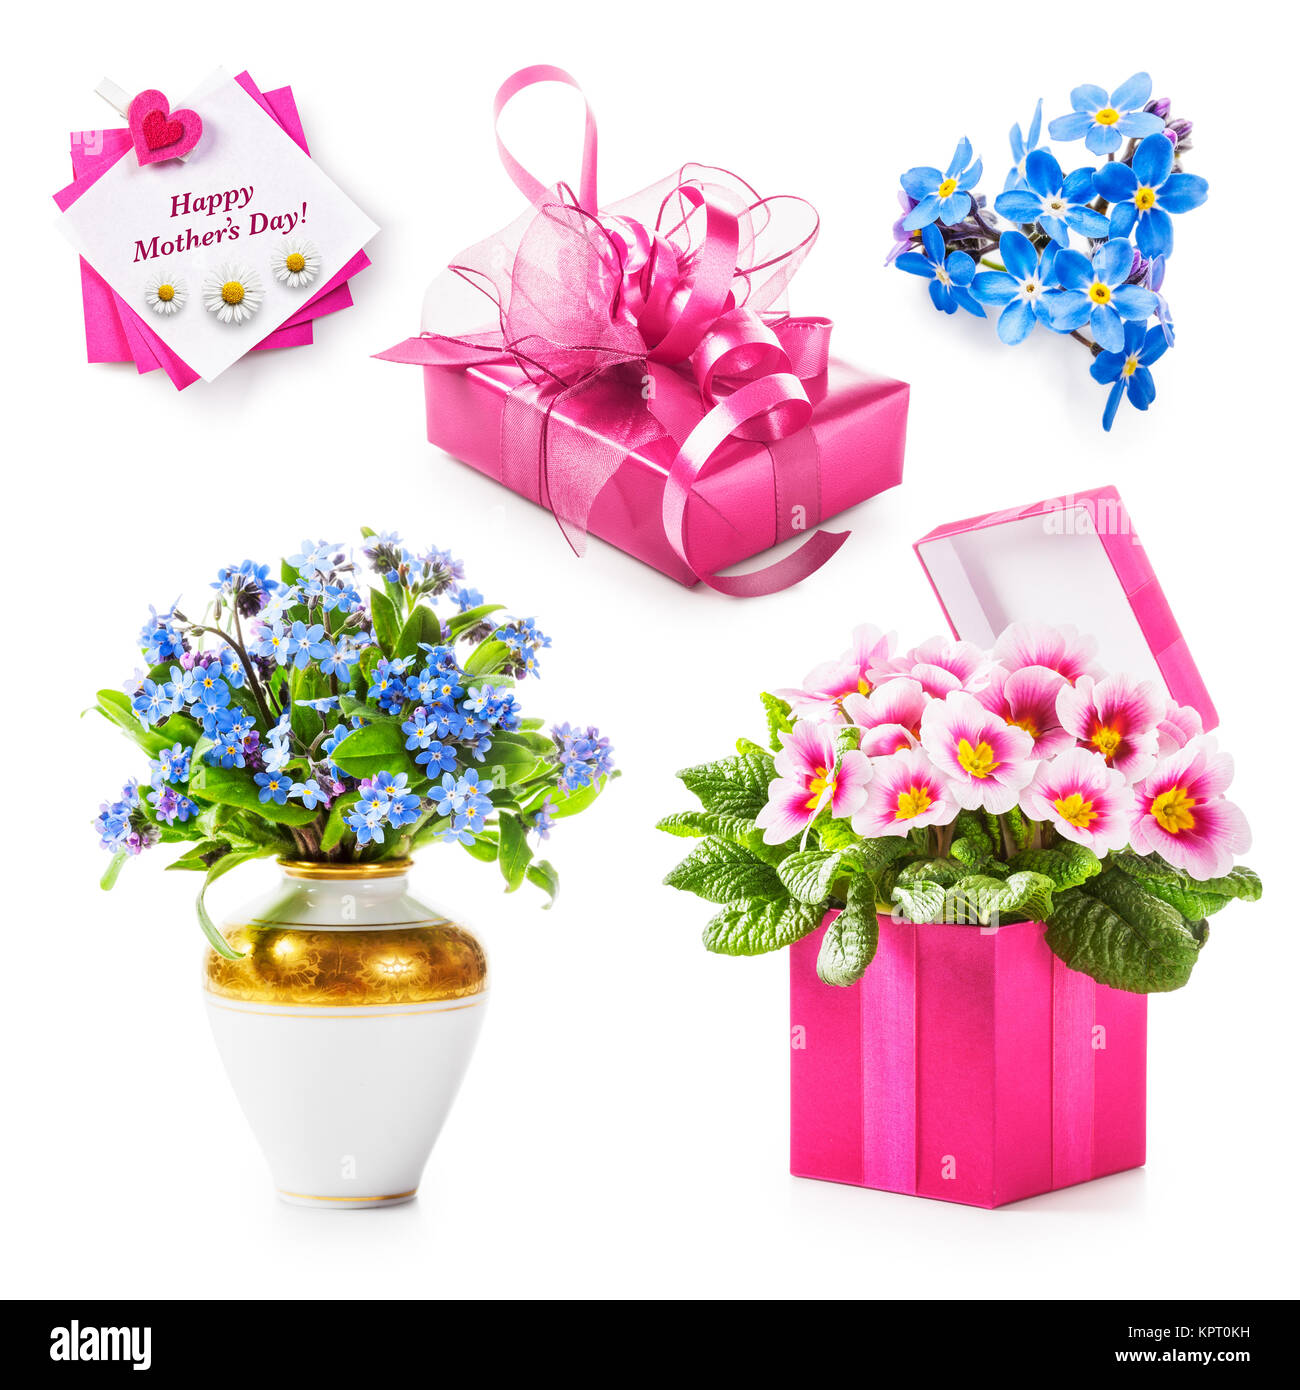 Mothers day gift collection pink gift box flowers greeting card mothers day gift collection pink gift box flowers greeting card isolated on white background holiday present concept m4hsunfo